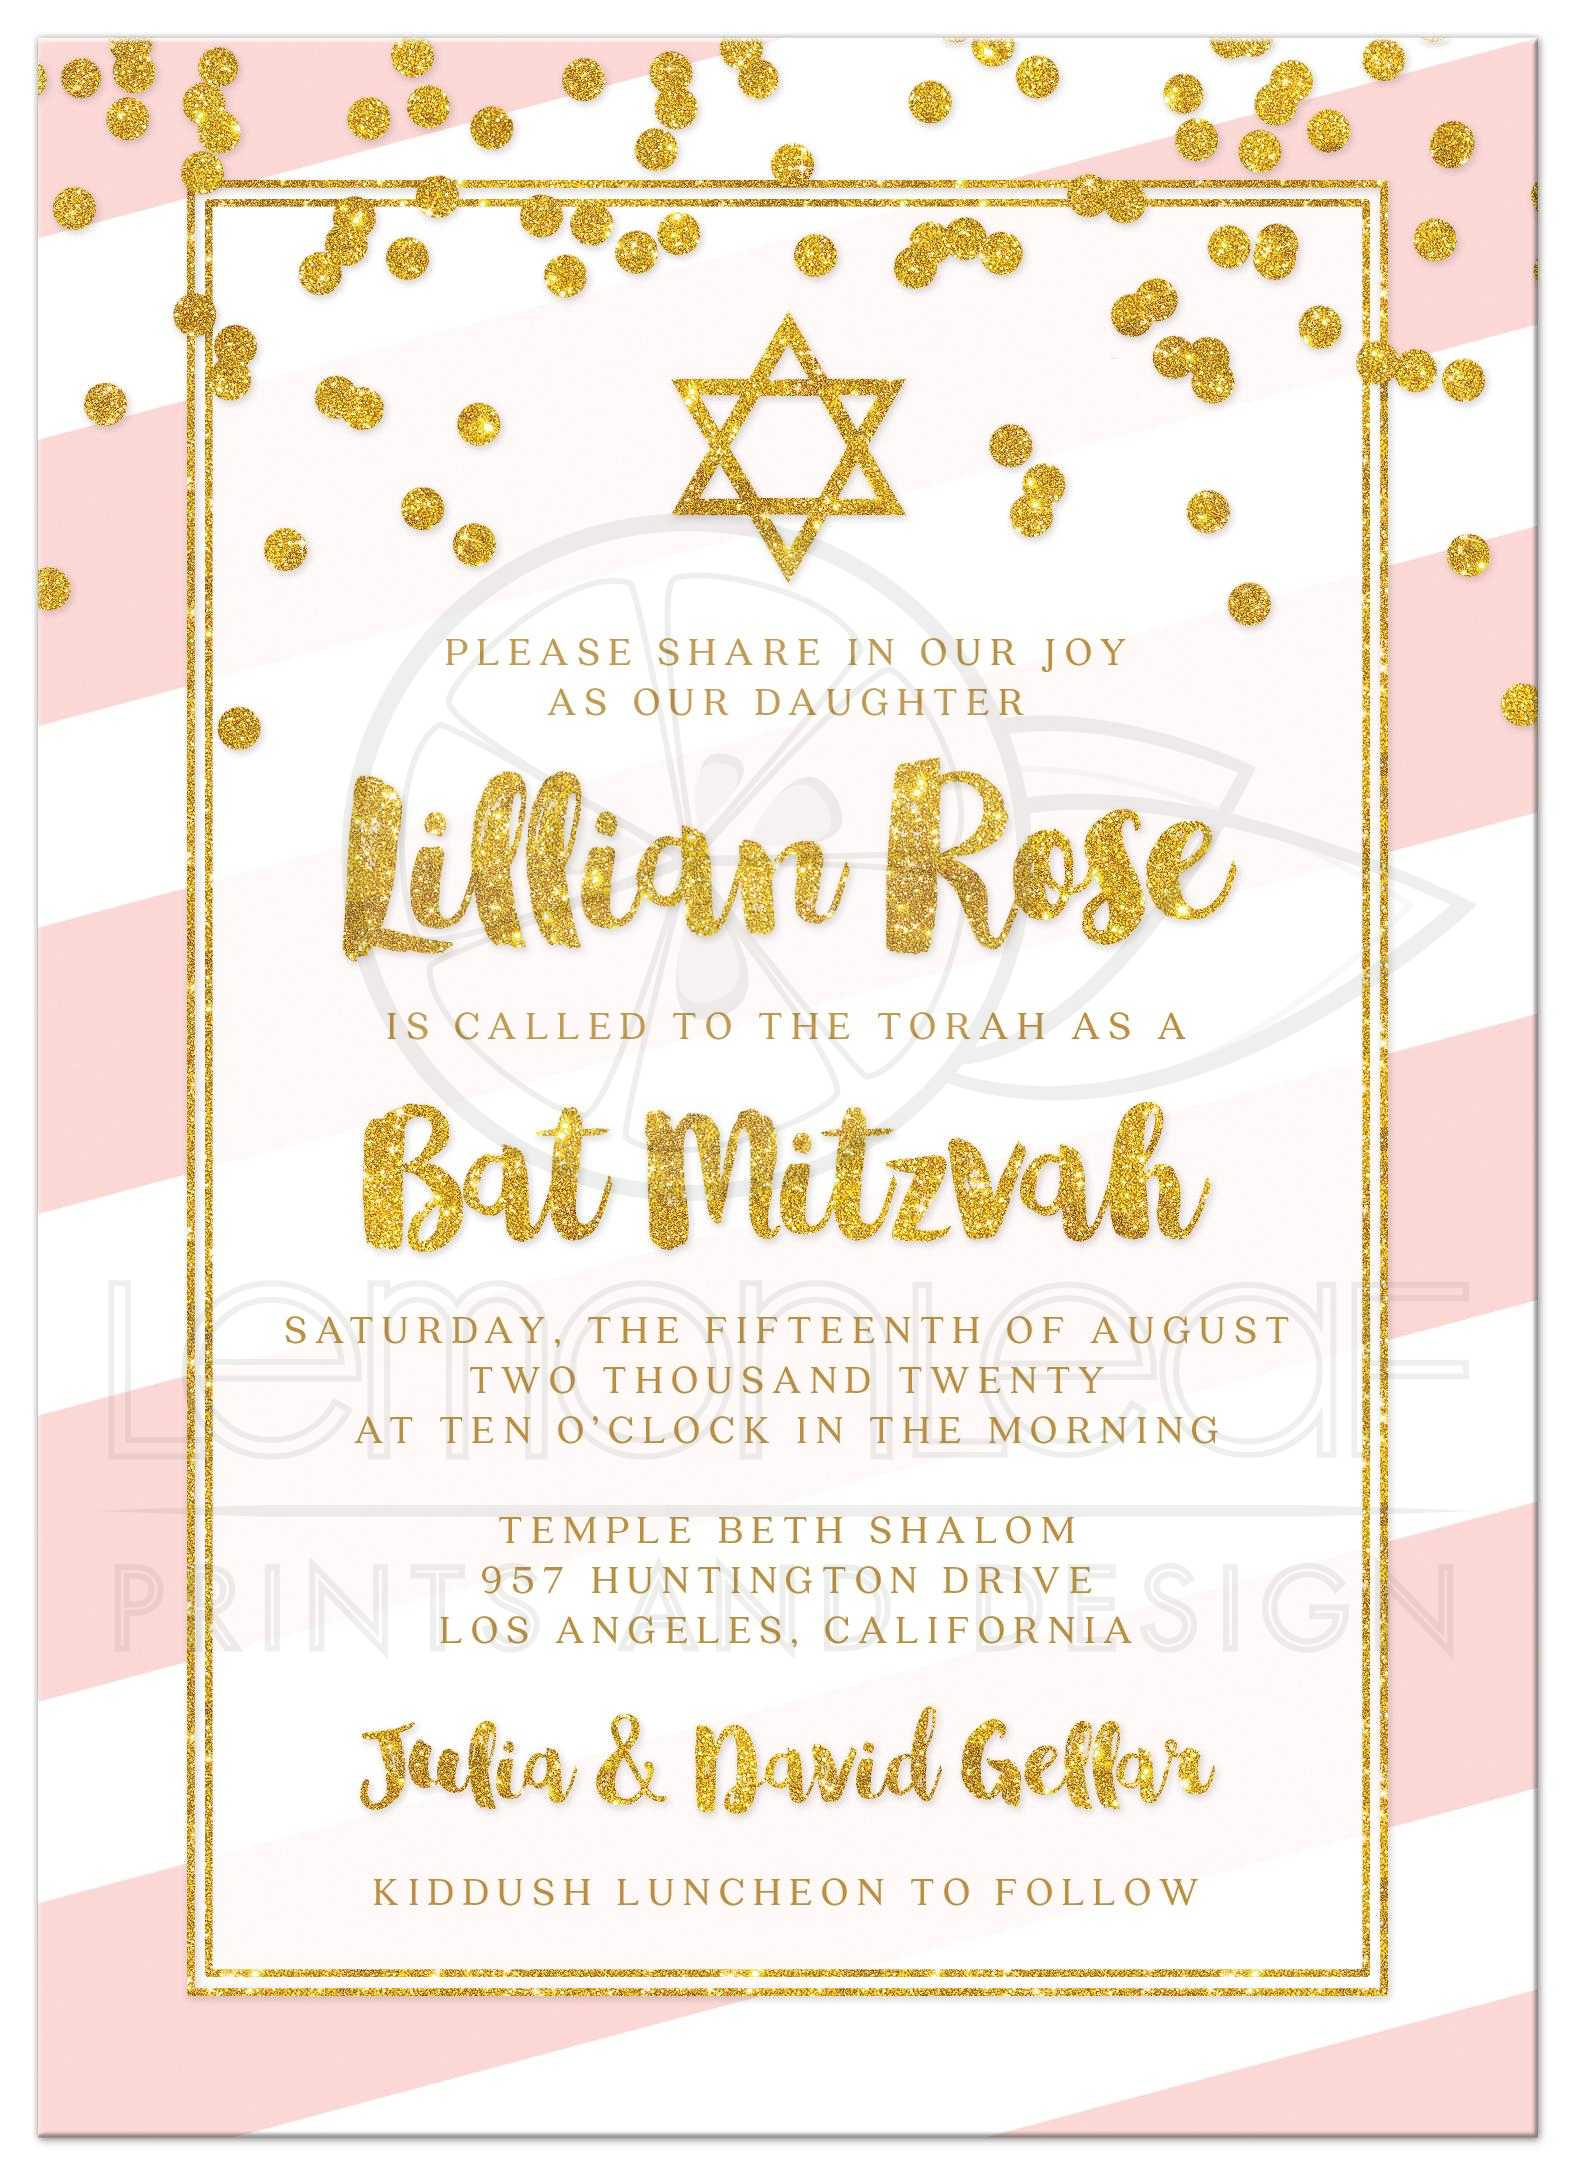 bat mitzvah invitations pink stripes gold confetti